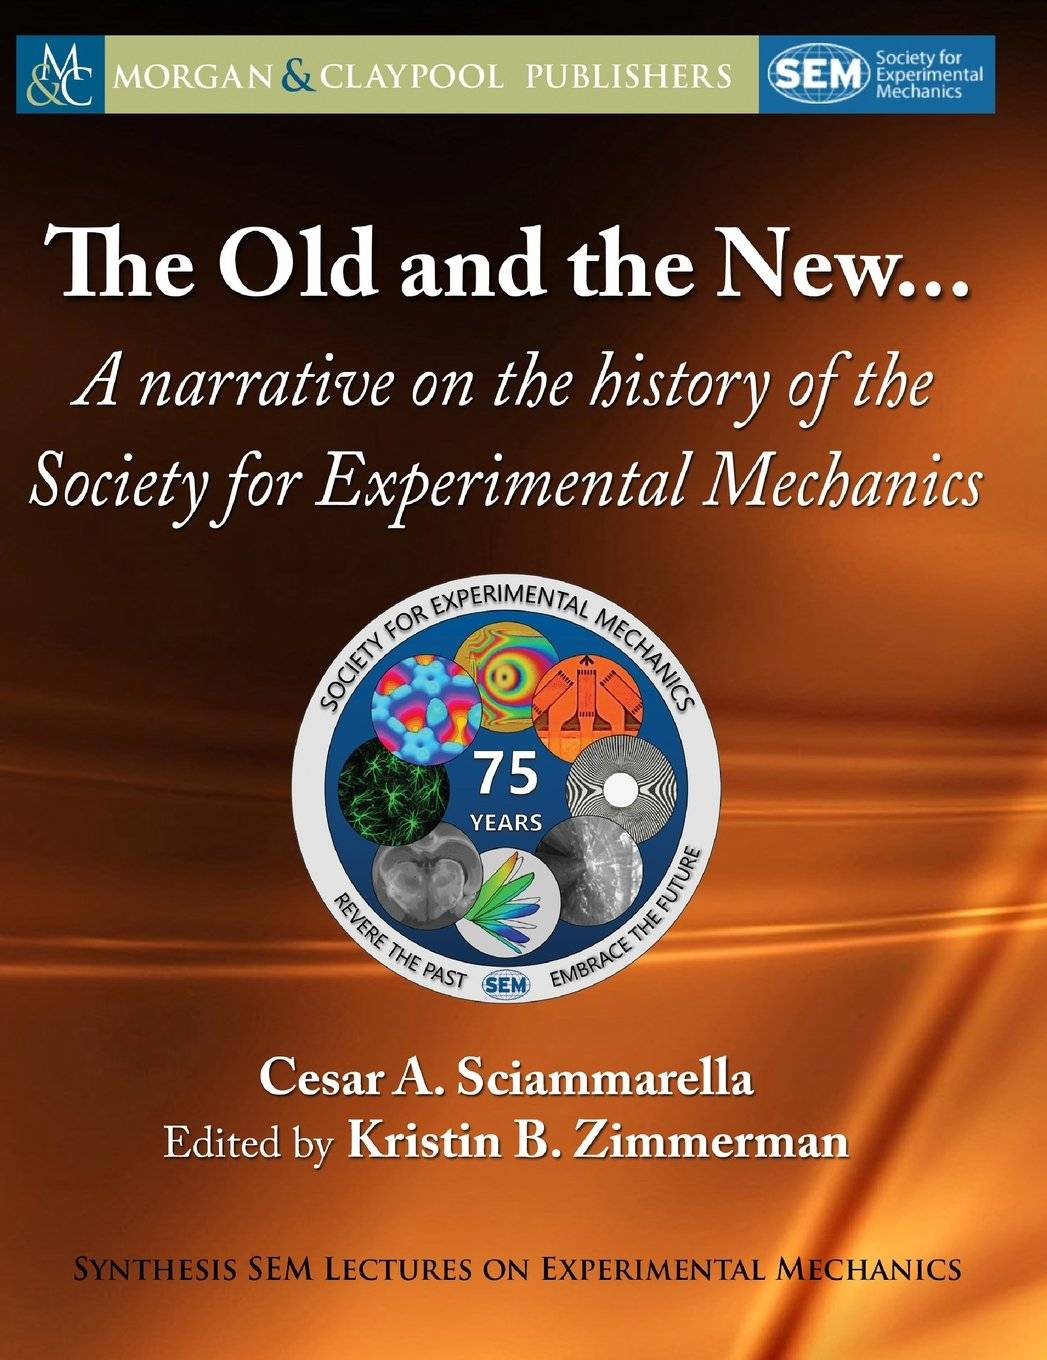 The Old and New: A Narrative on the History of the Society for Experimental Mechanics